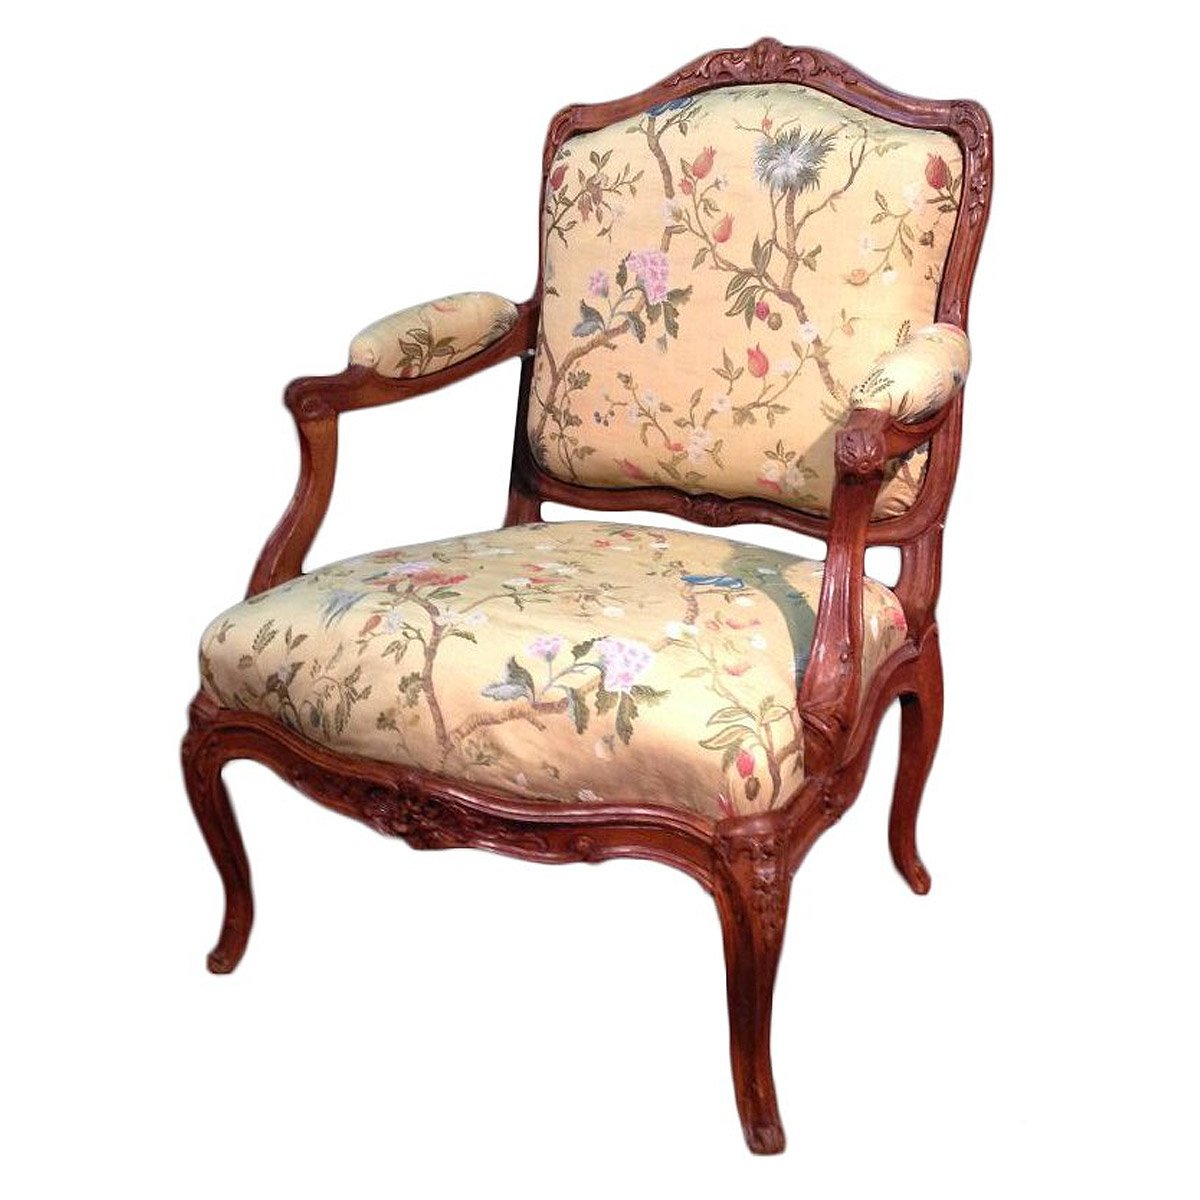 fauteuil chassis louis xv estampill m cresson xviiie si cle. Black Bedroom Furniture Sets. Home Design Ideas